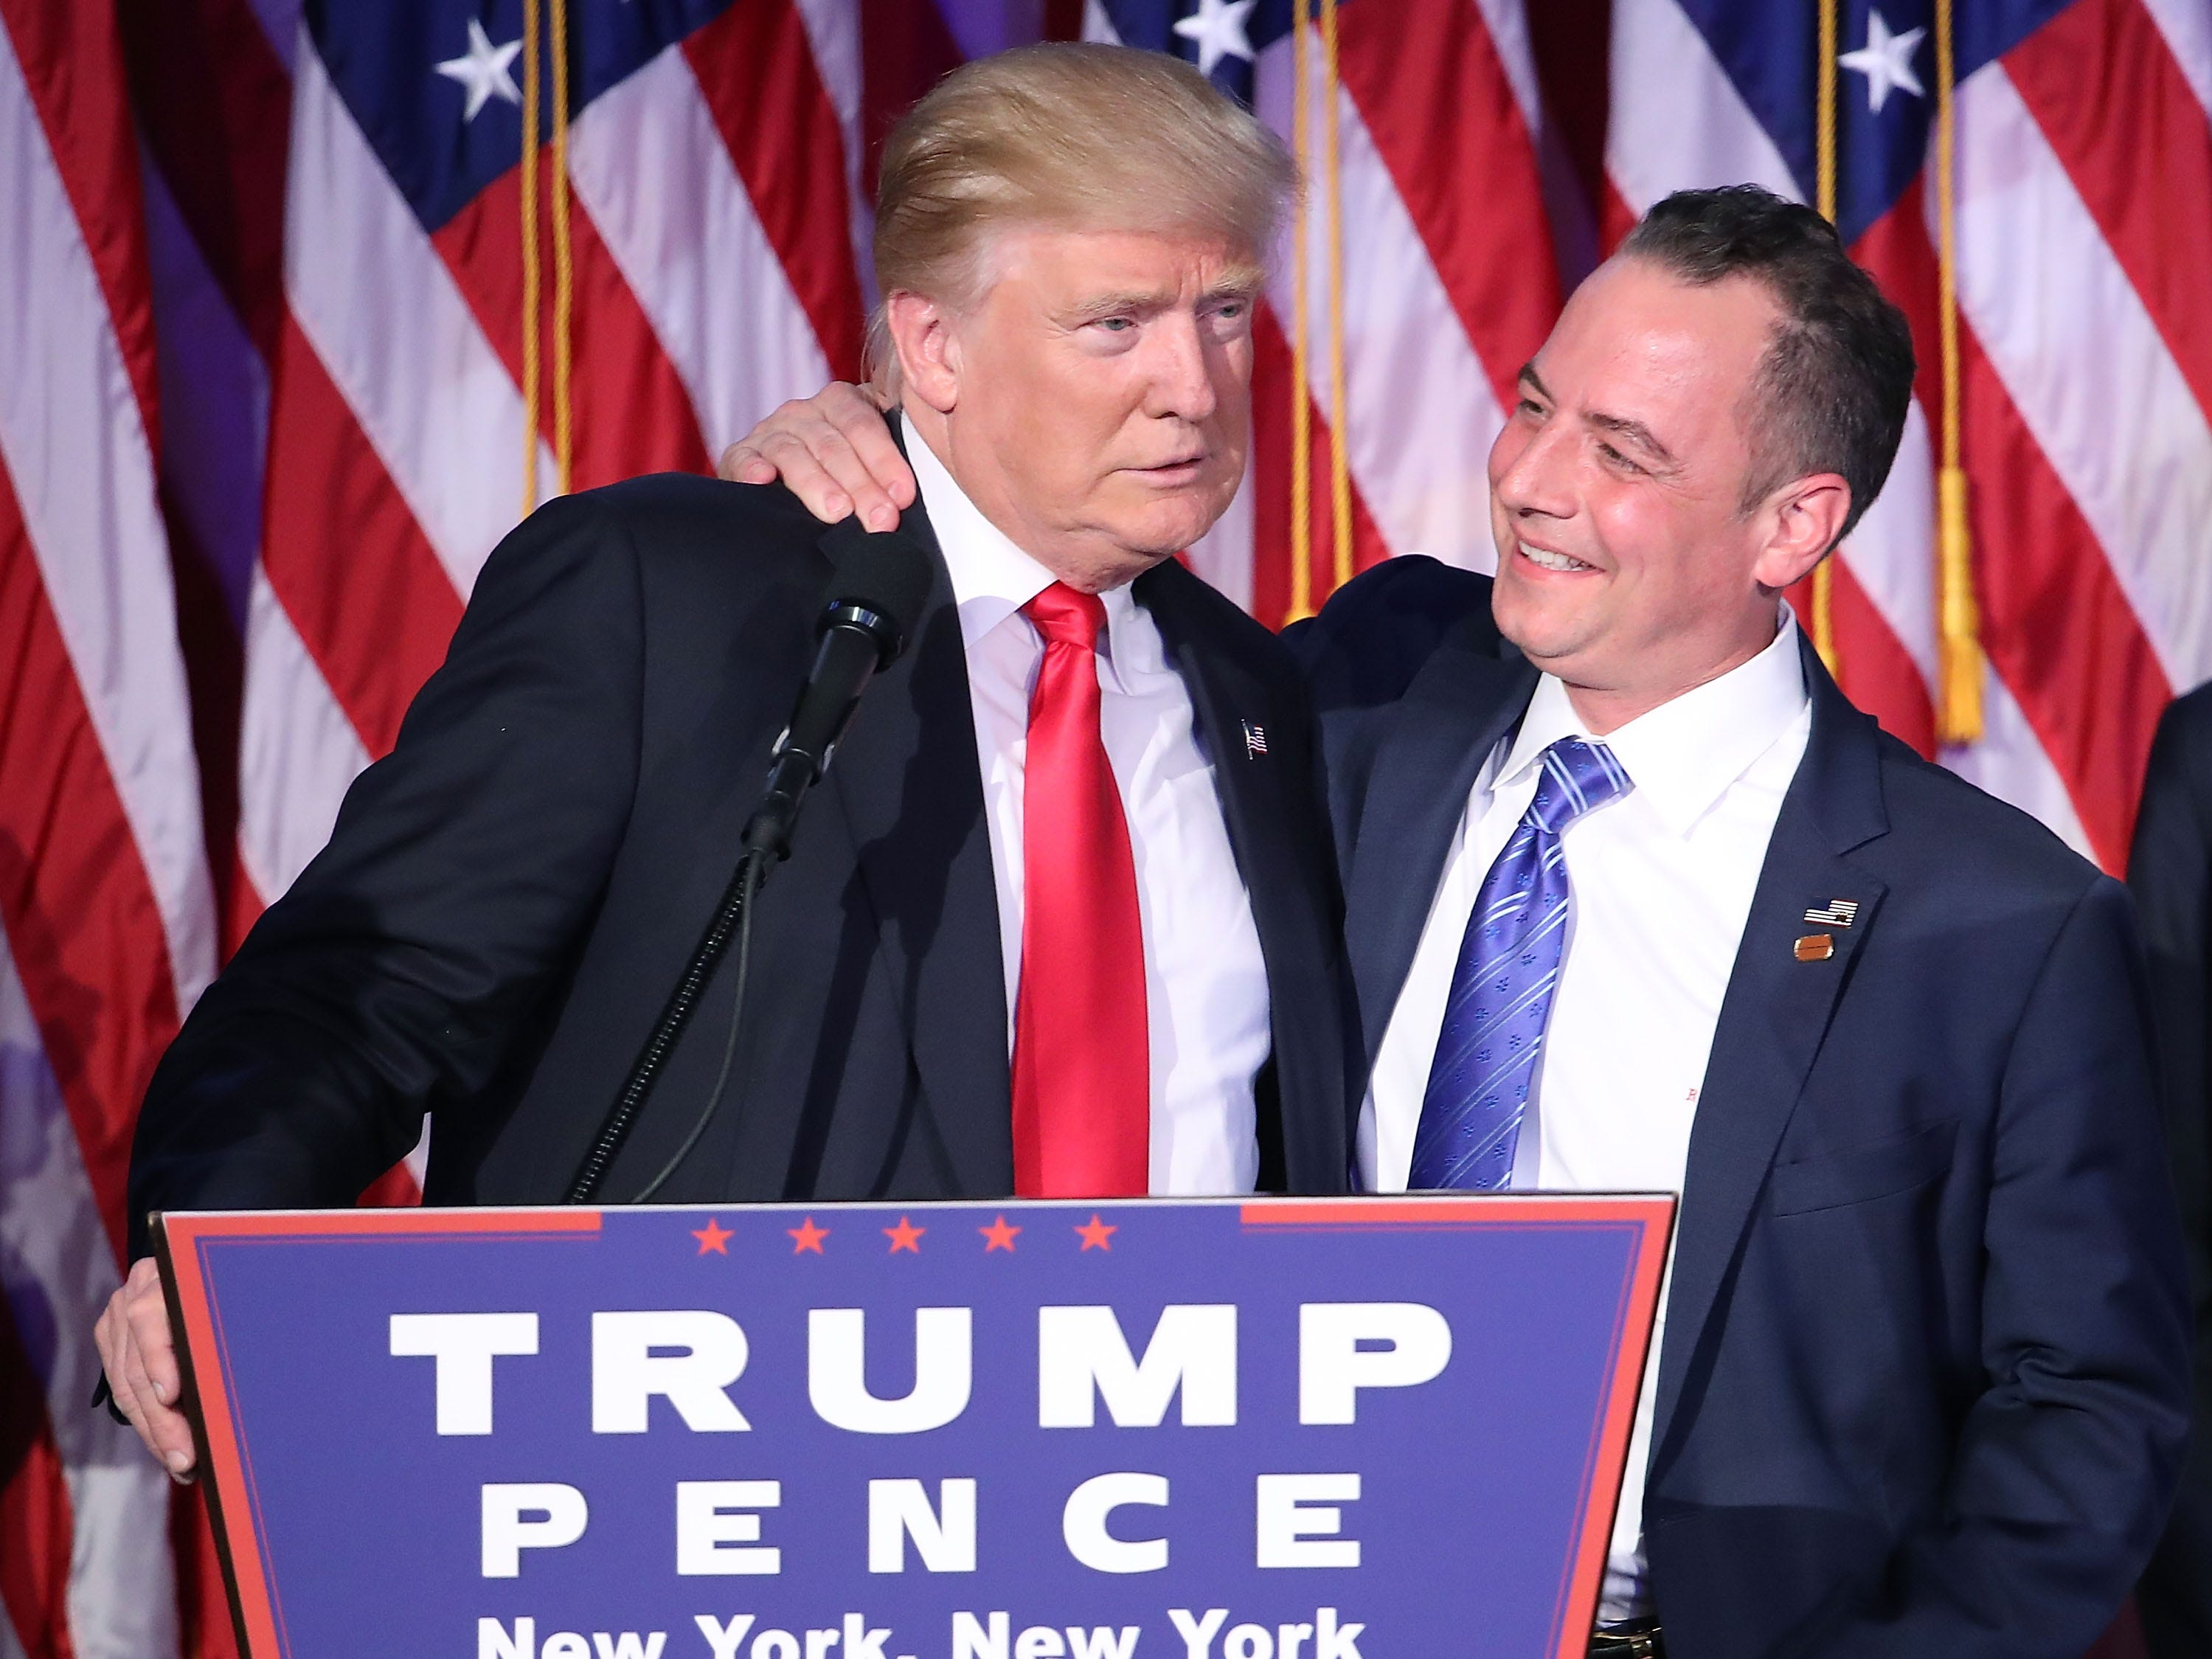 President-elect Donald Trump has chosen Reince Priebus to be his White House chief of staff.